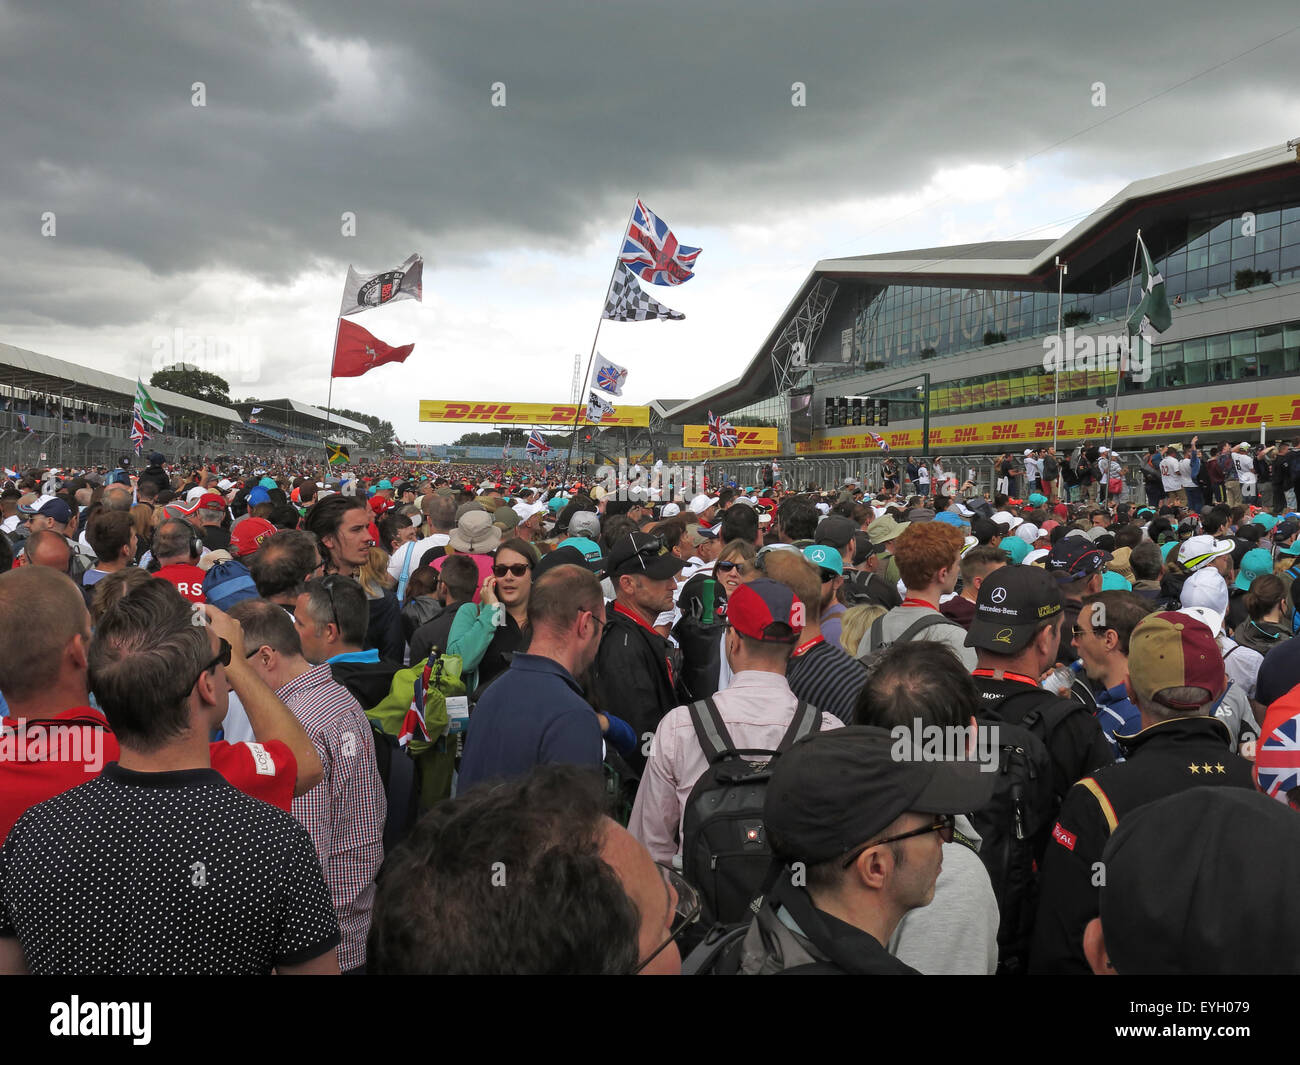 Formula1,formula,One,1,race,racing,circuit,car,motor,sport,motorsport,fan,fanatics,visitors,punters,road,track,side,trackside,podium,win,winner,winners,GB,English,sporting,event,calender,building,packed,full,ticketed,drive,driver,automobile,BTCC,fans,Formula One,Great Britain,crowds on track,GoTonySmith,wing,paddock,complex,2011,architecture,east,west,midlands,classic,facilities,home,of,motorracing,motoracing,venue,campers,northamptonshire,northants,officials,Buy Pictures of,Buy Images Of,Home Of British,Home,Of,British,Motor,Racing